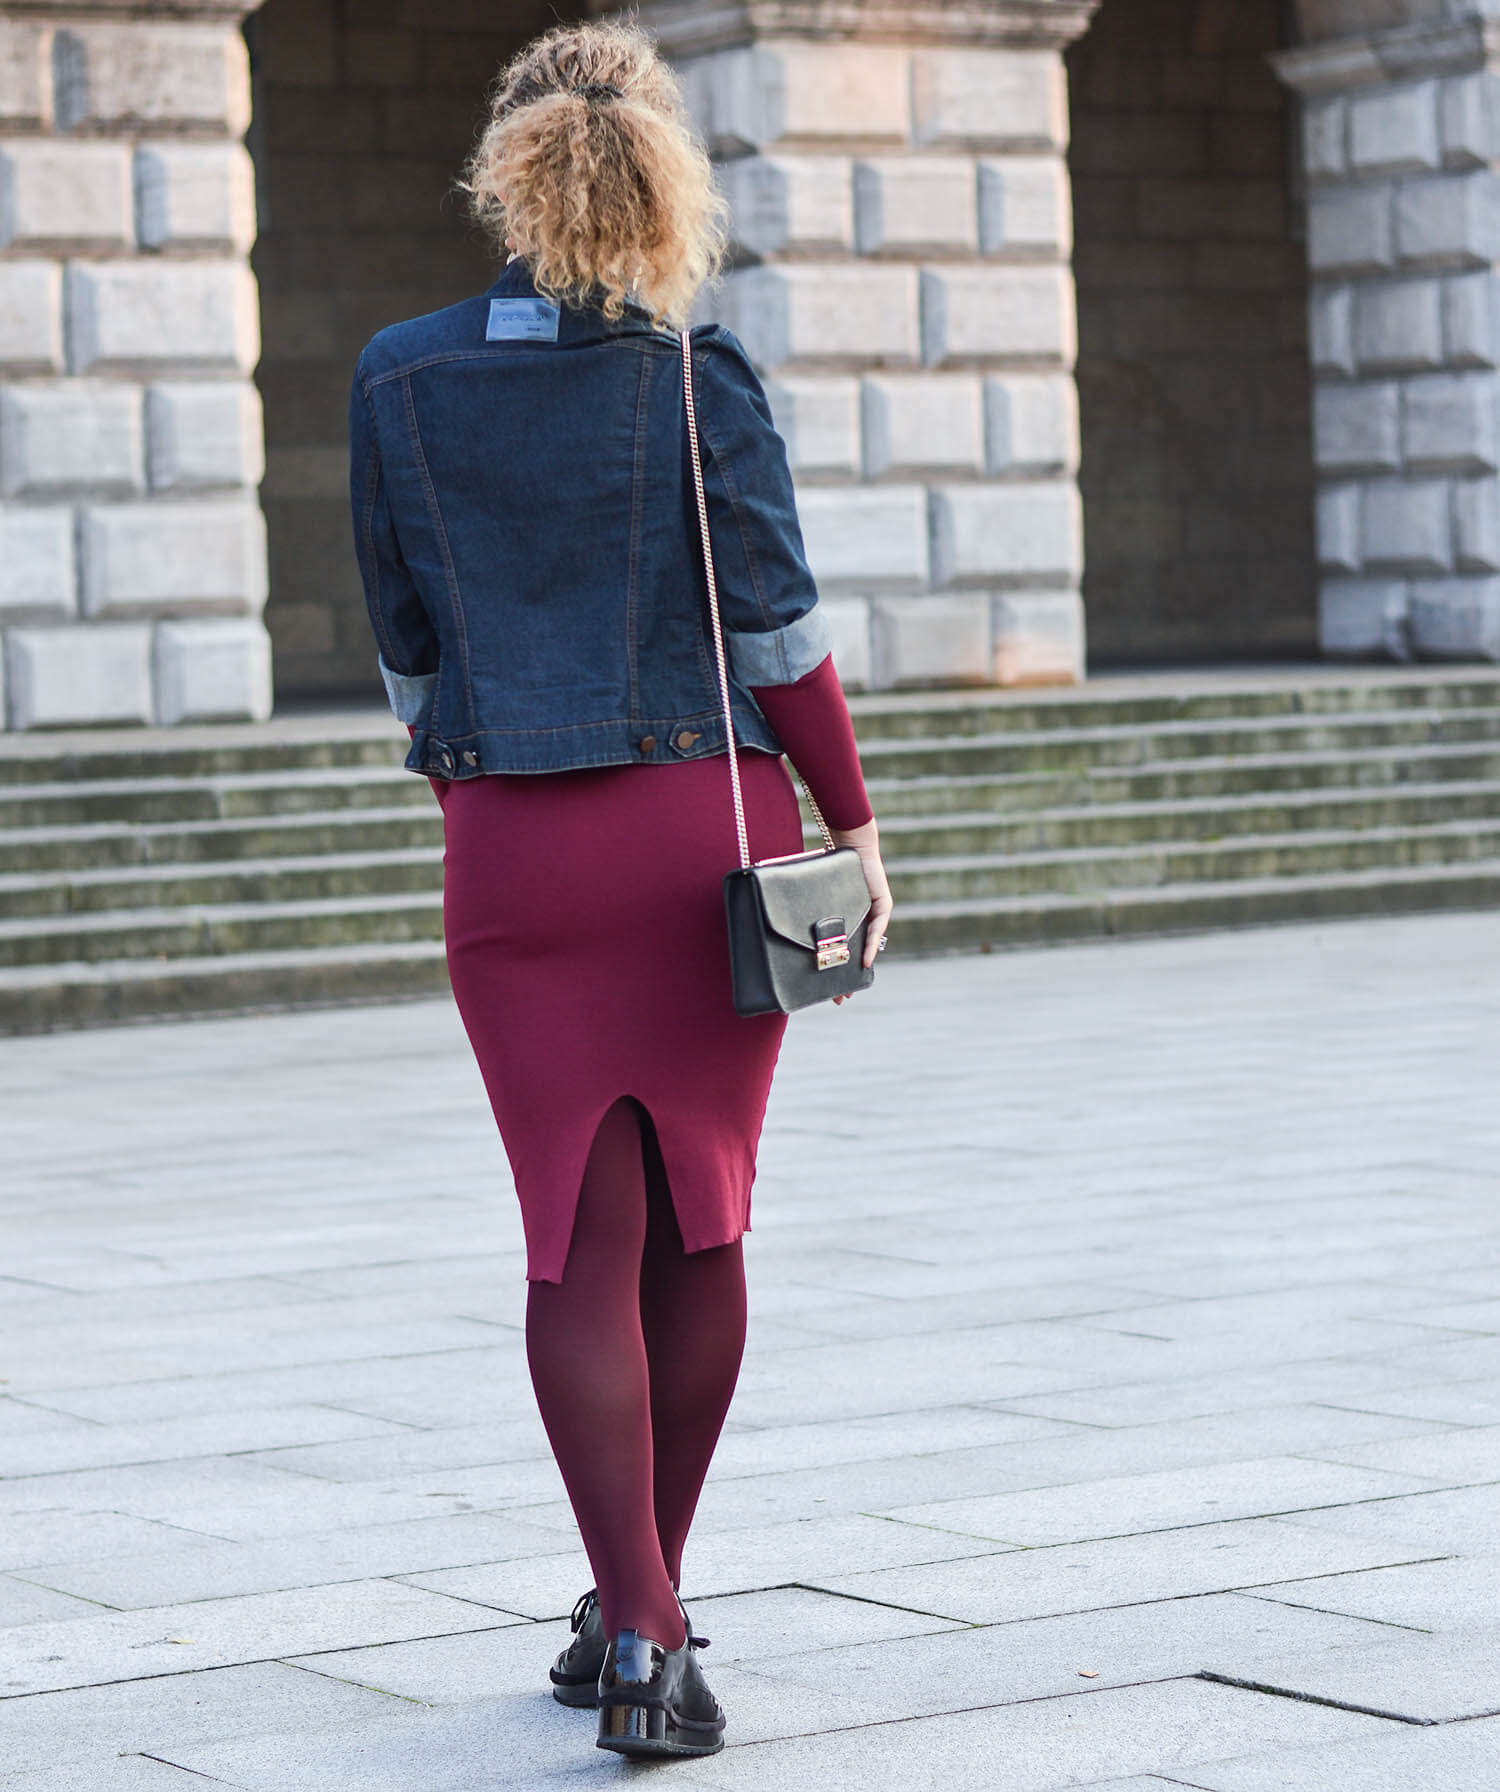 Kationette-fashionblogger-nrw-Outfit-Burgundy-Fall-Dress-Denim-Jacket-and-Platform-Shoes